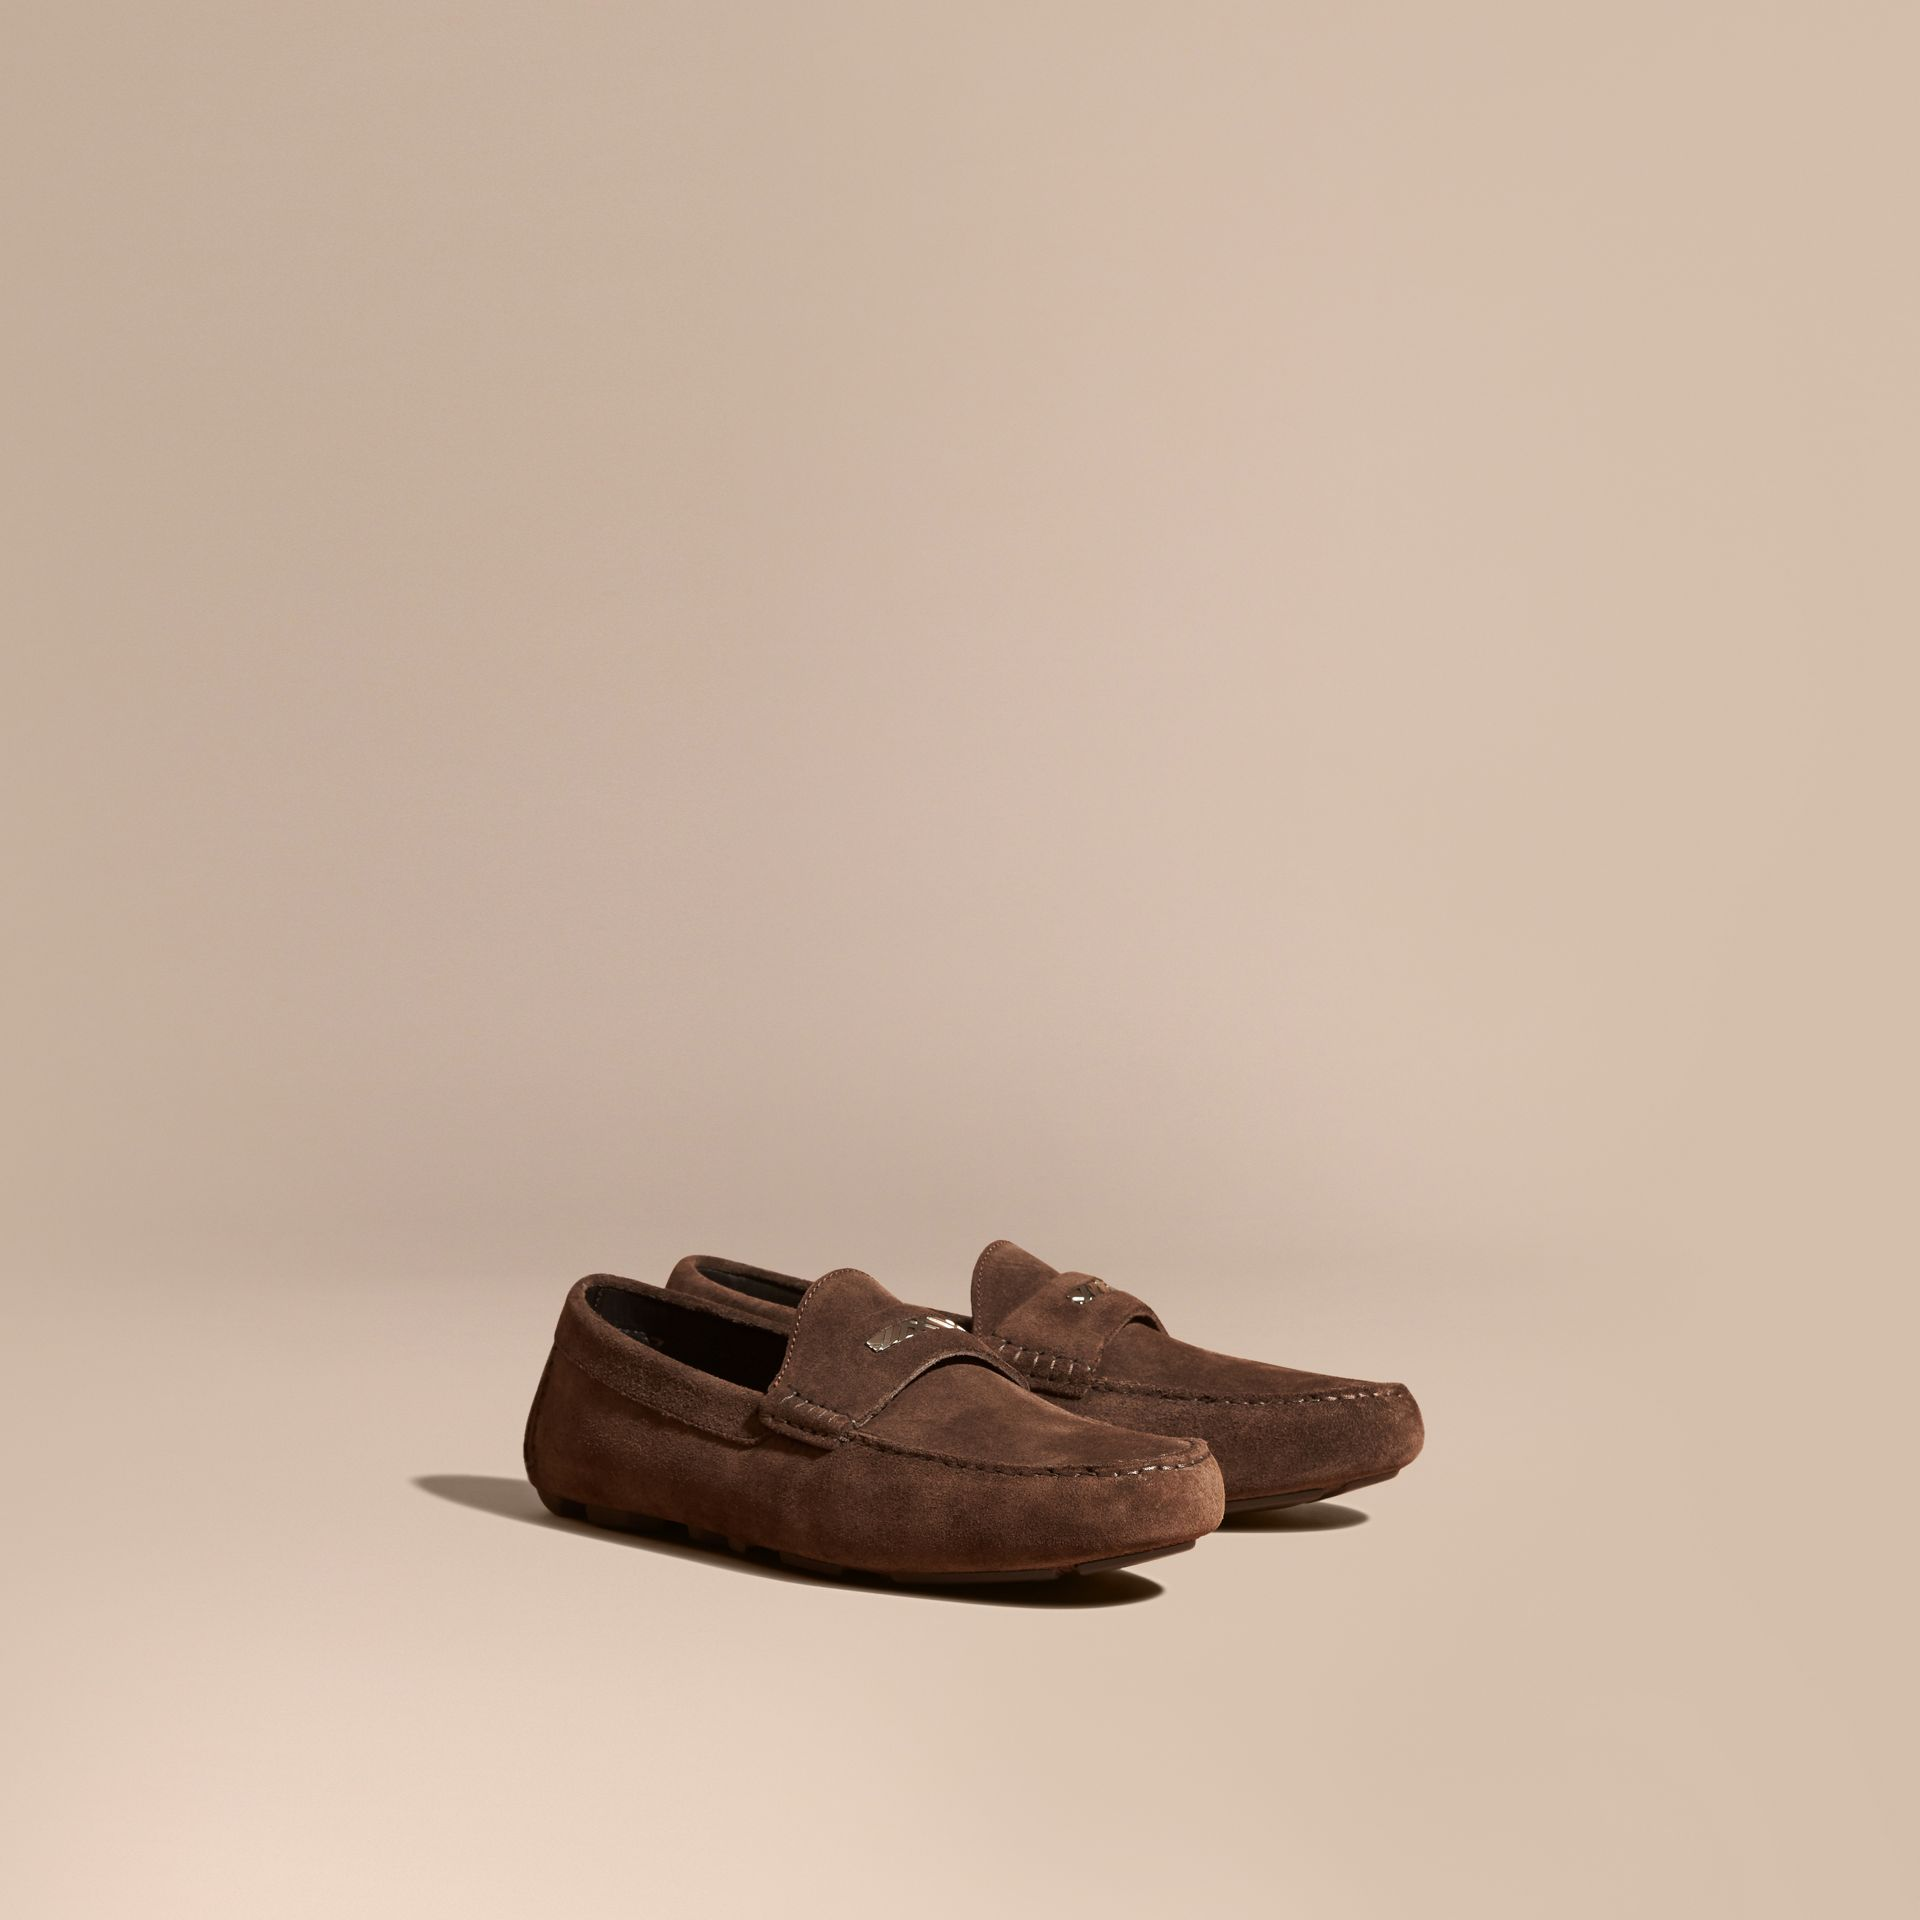 Peat brown Suede Loafers with Engraved Check Detail Peat Brown - gallery image 1